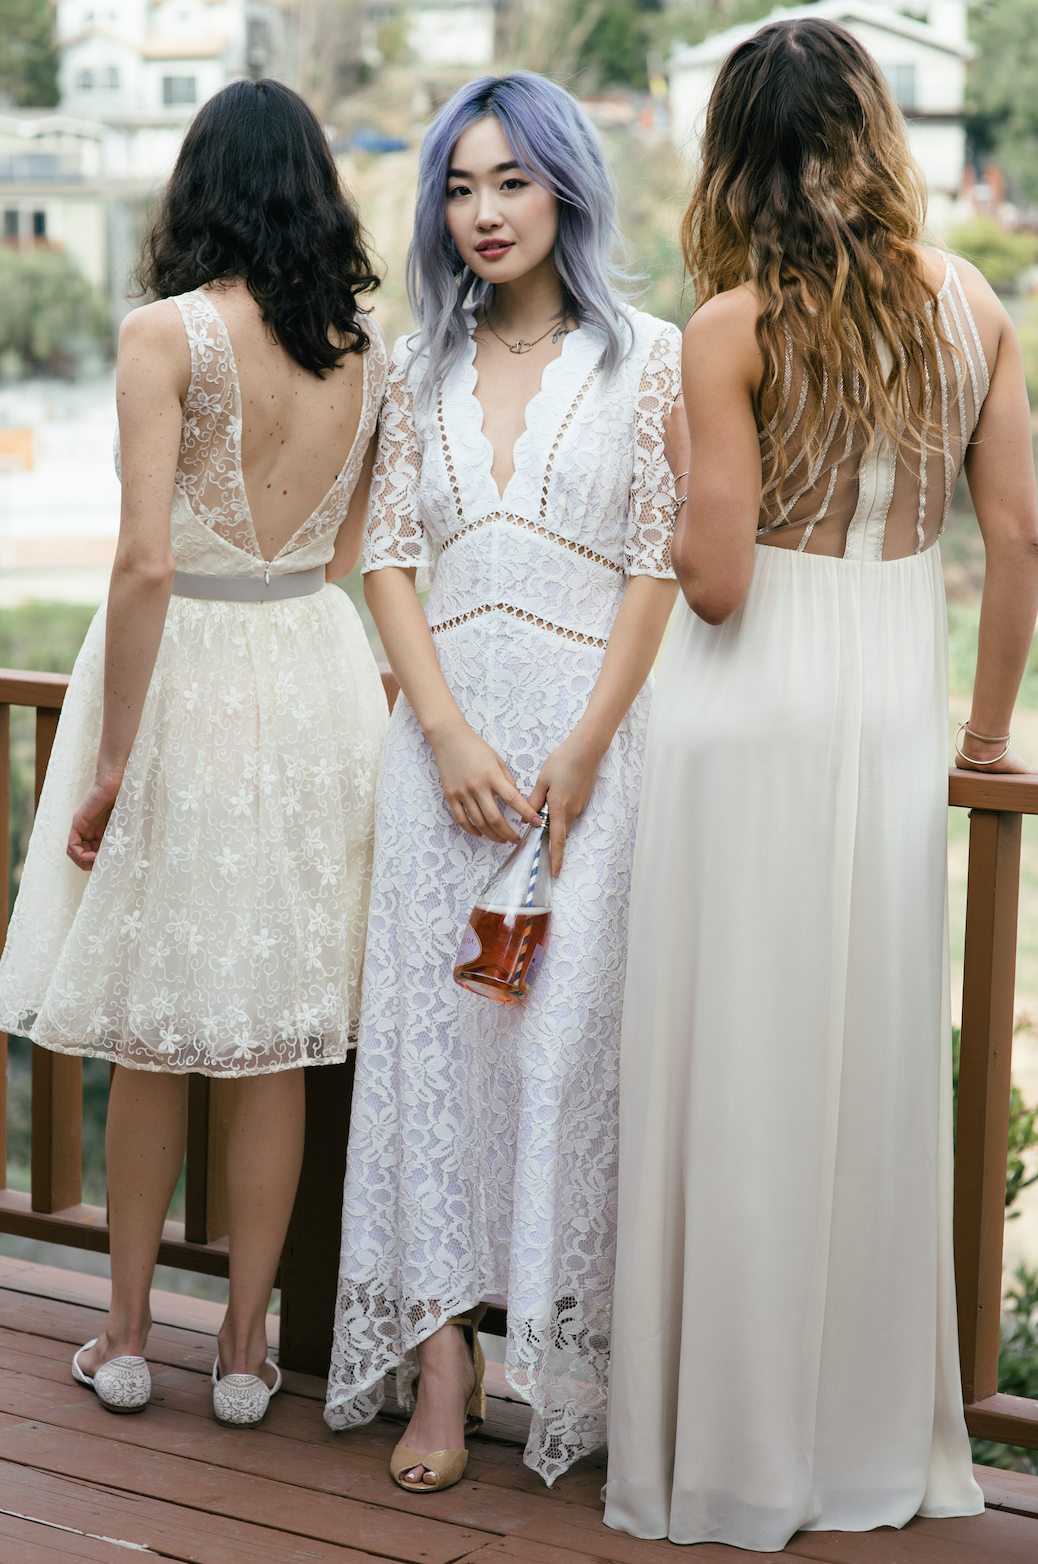 Celebrate your you-niqueness with the bridal collection from Mod Cloth! http://www.stylemepretty.com/2016/03/31/celebrate-you-niqueness-with-modcloth/